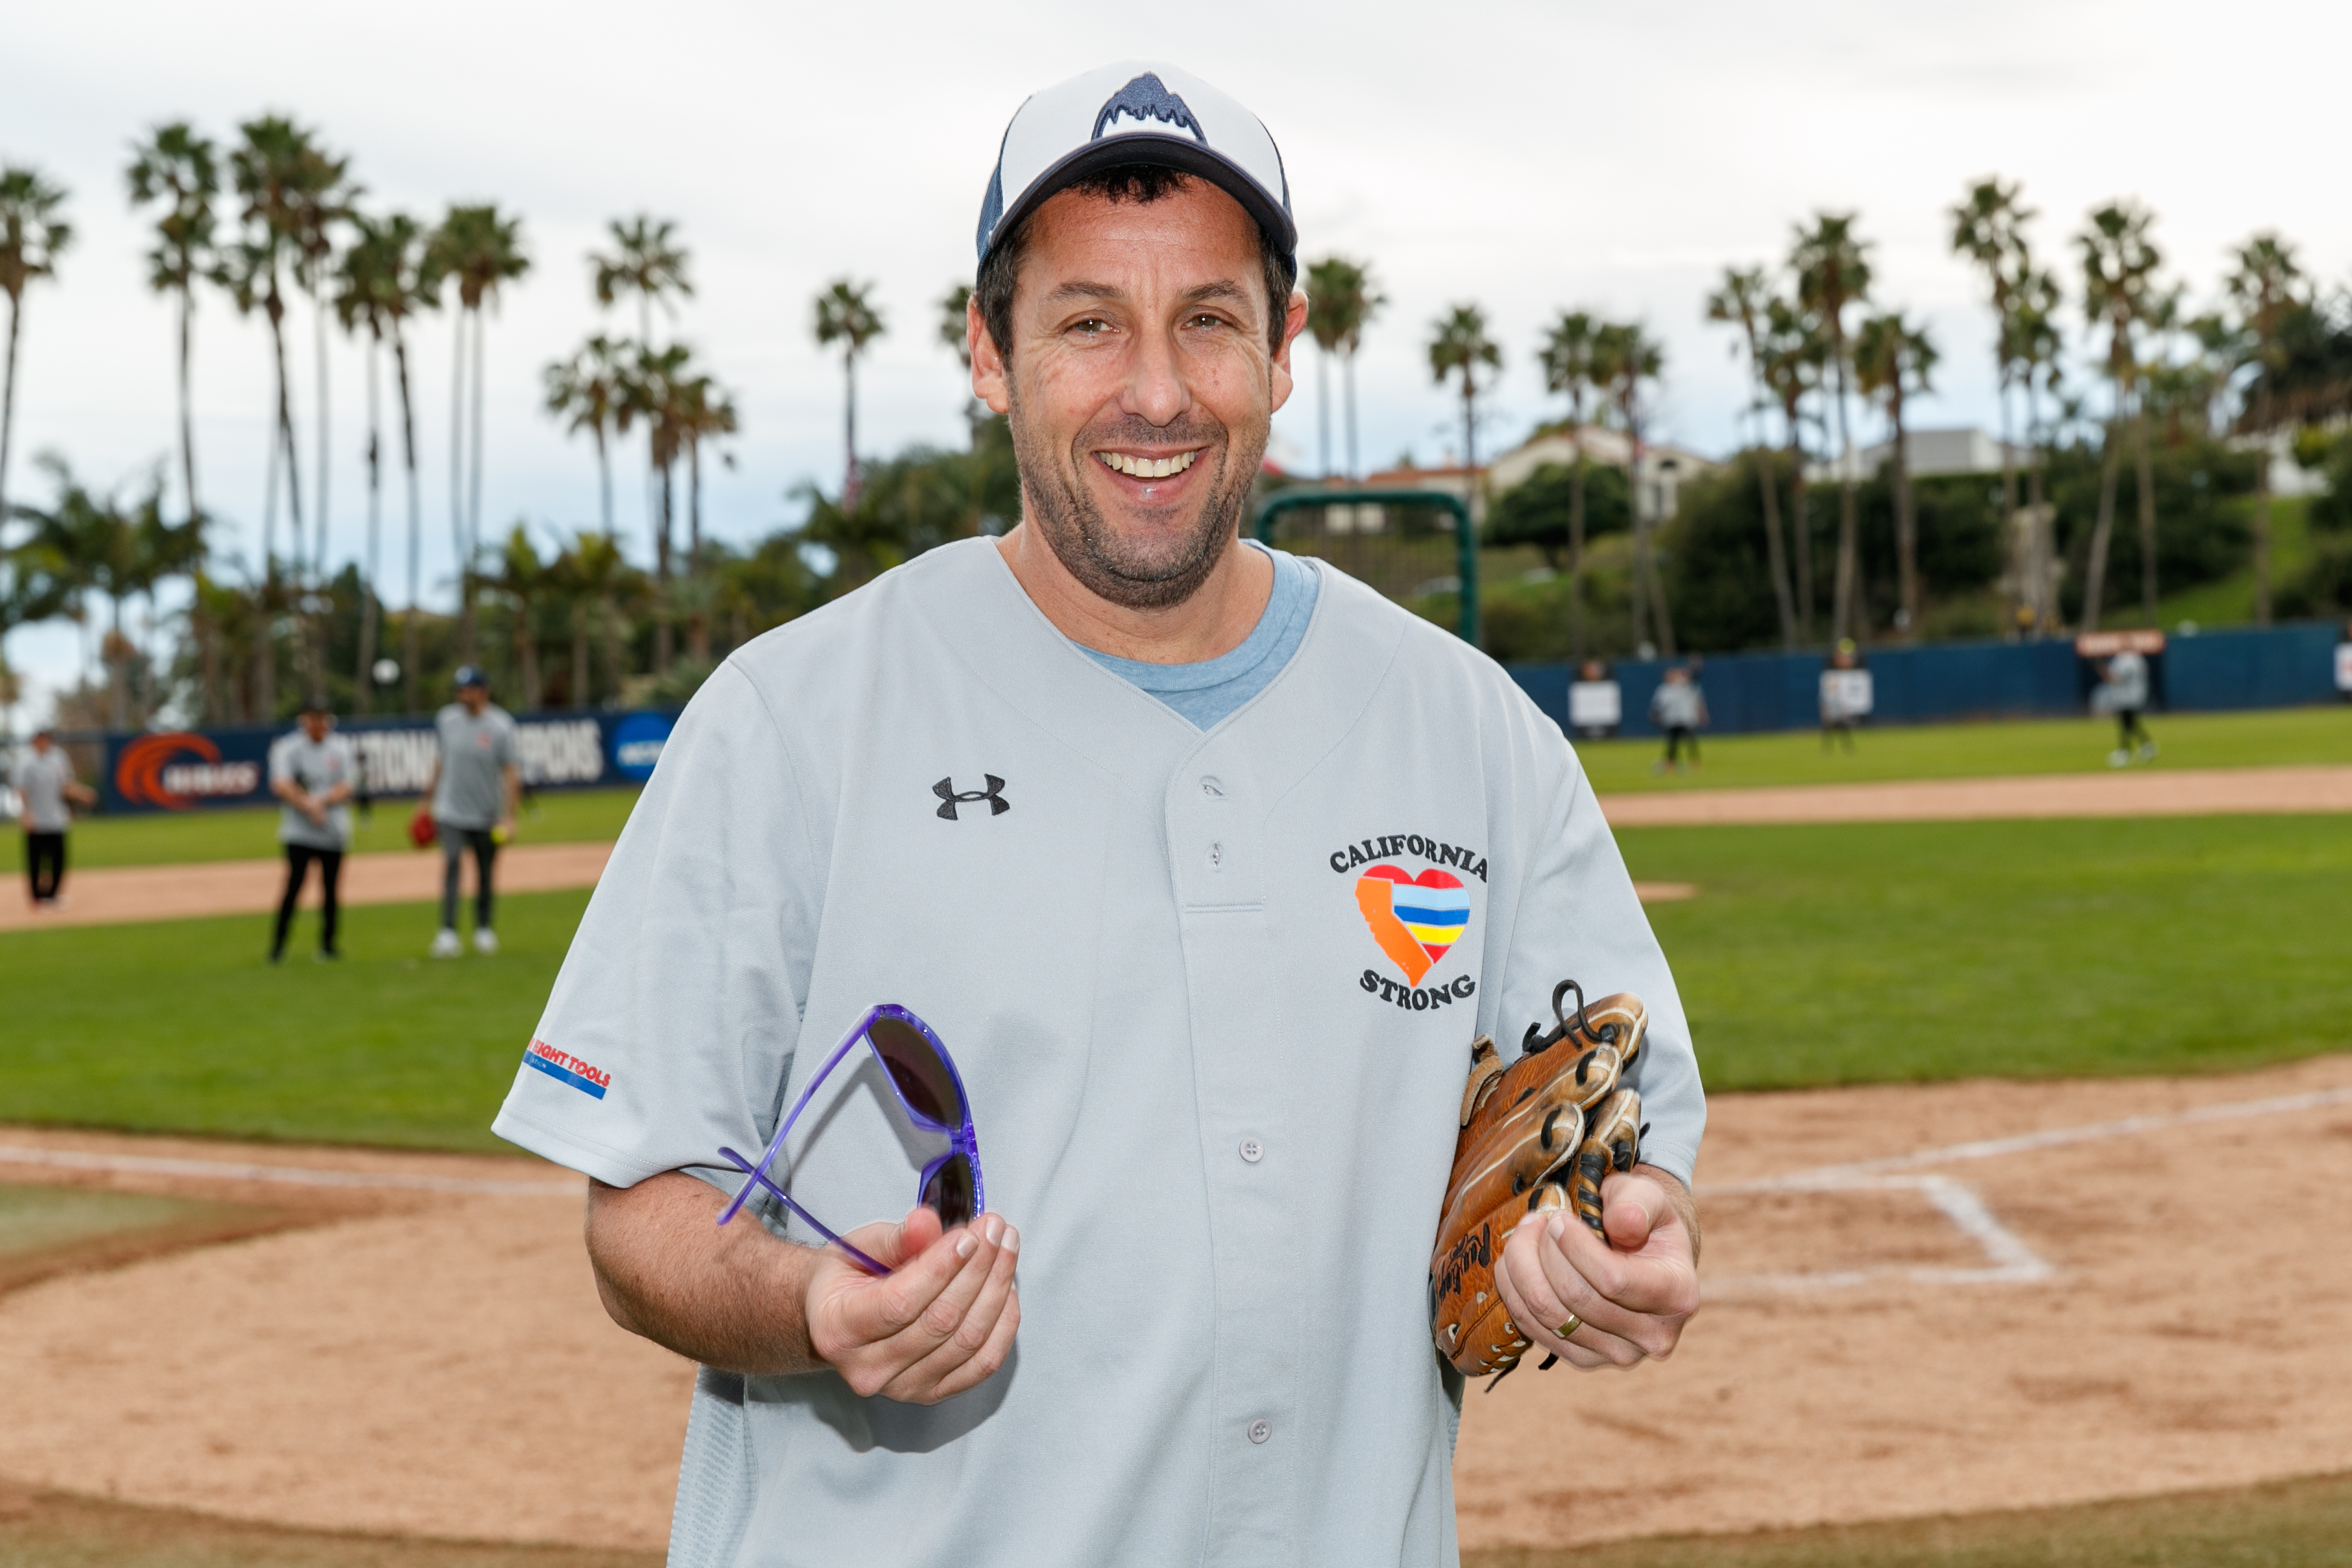 """Adam Sandler plays in a charity softball game to benefit """"California Strong"""" at Pepperdine University in Malibu, California, on Jan,13, 2019."""